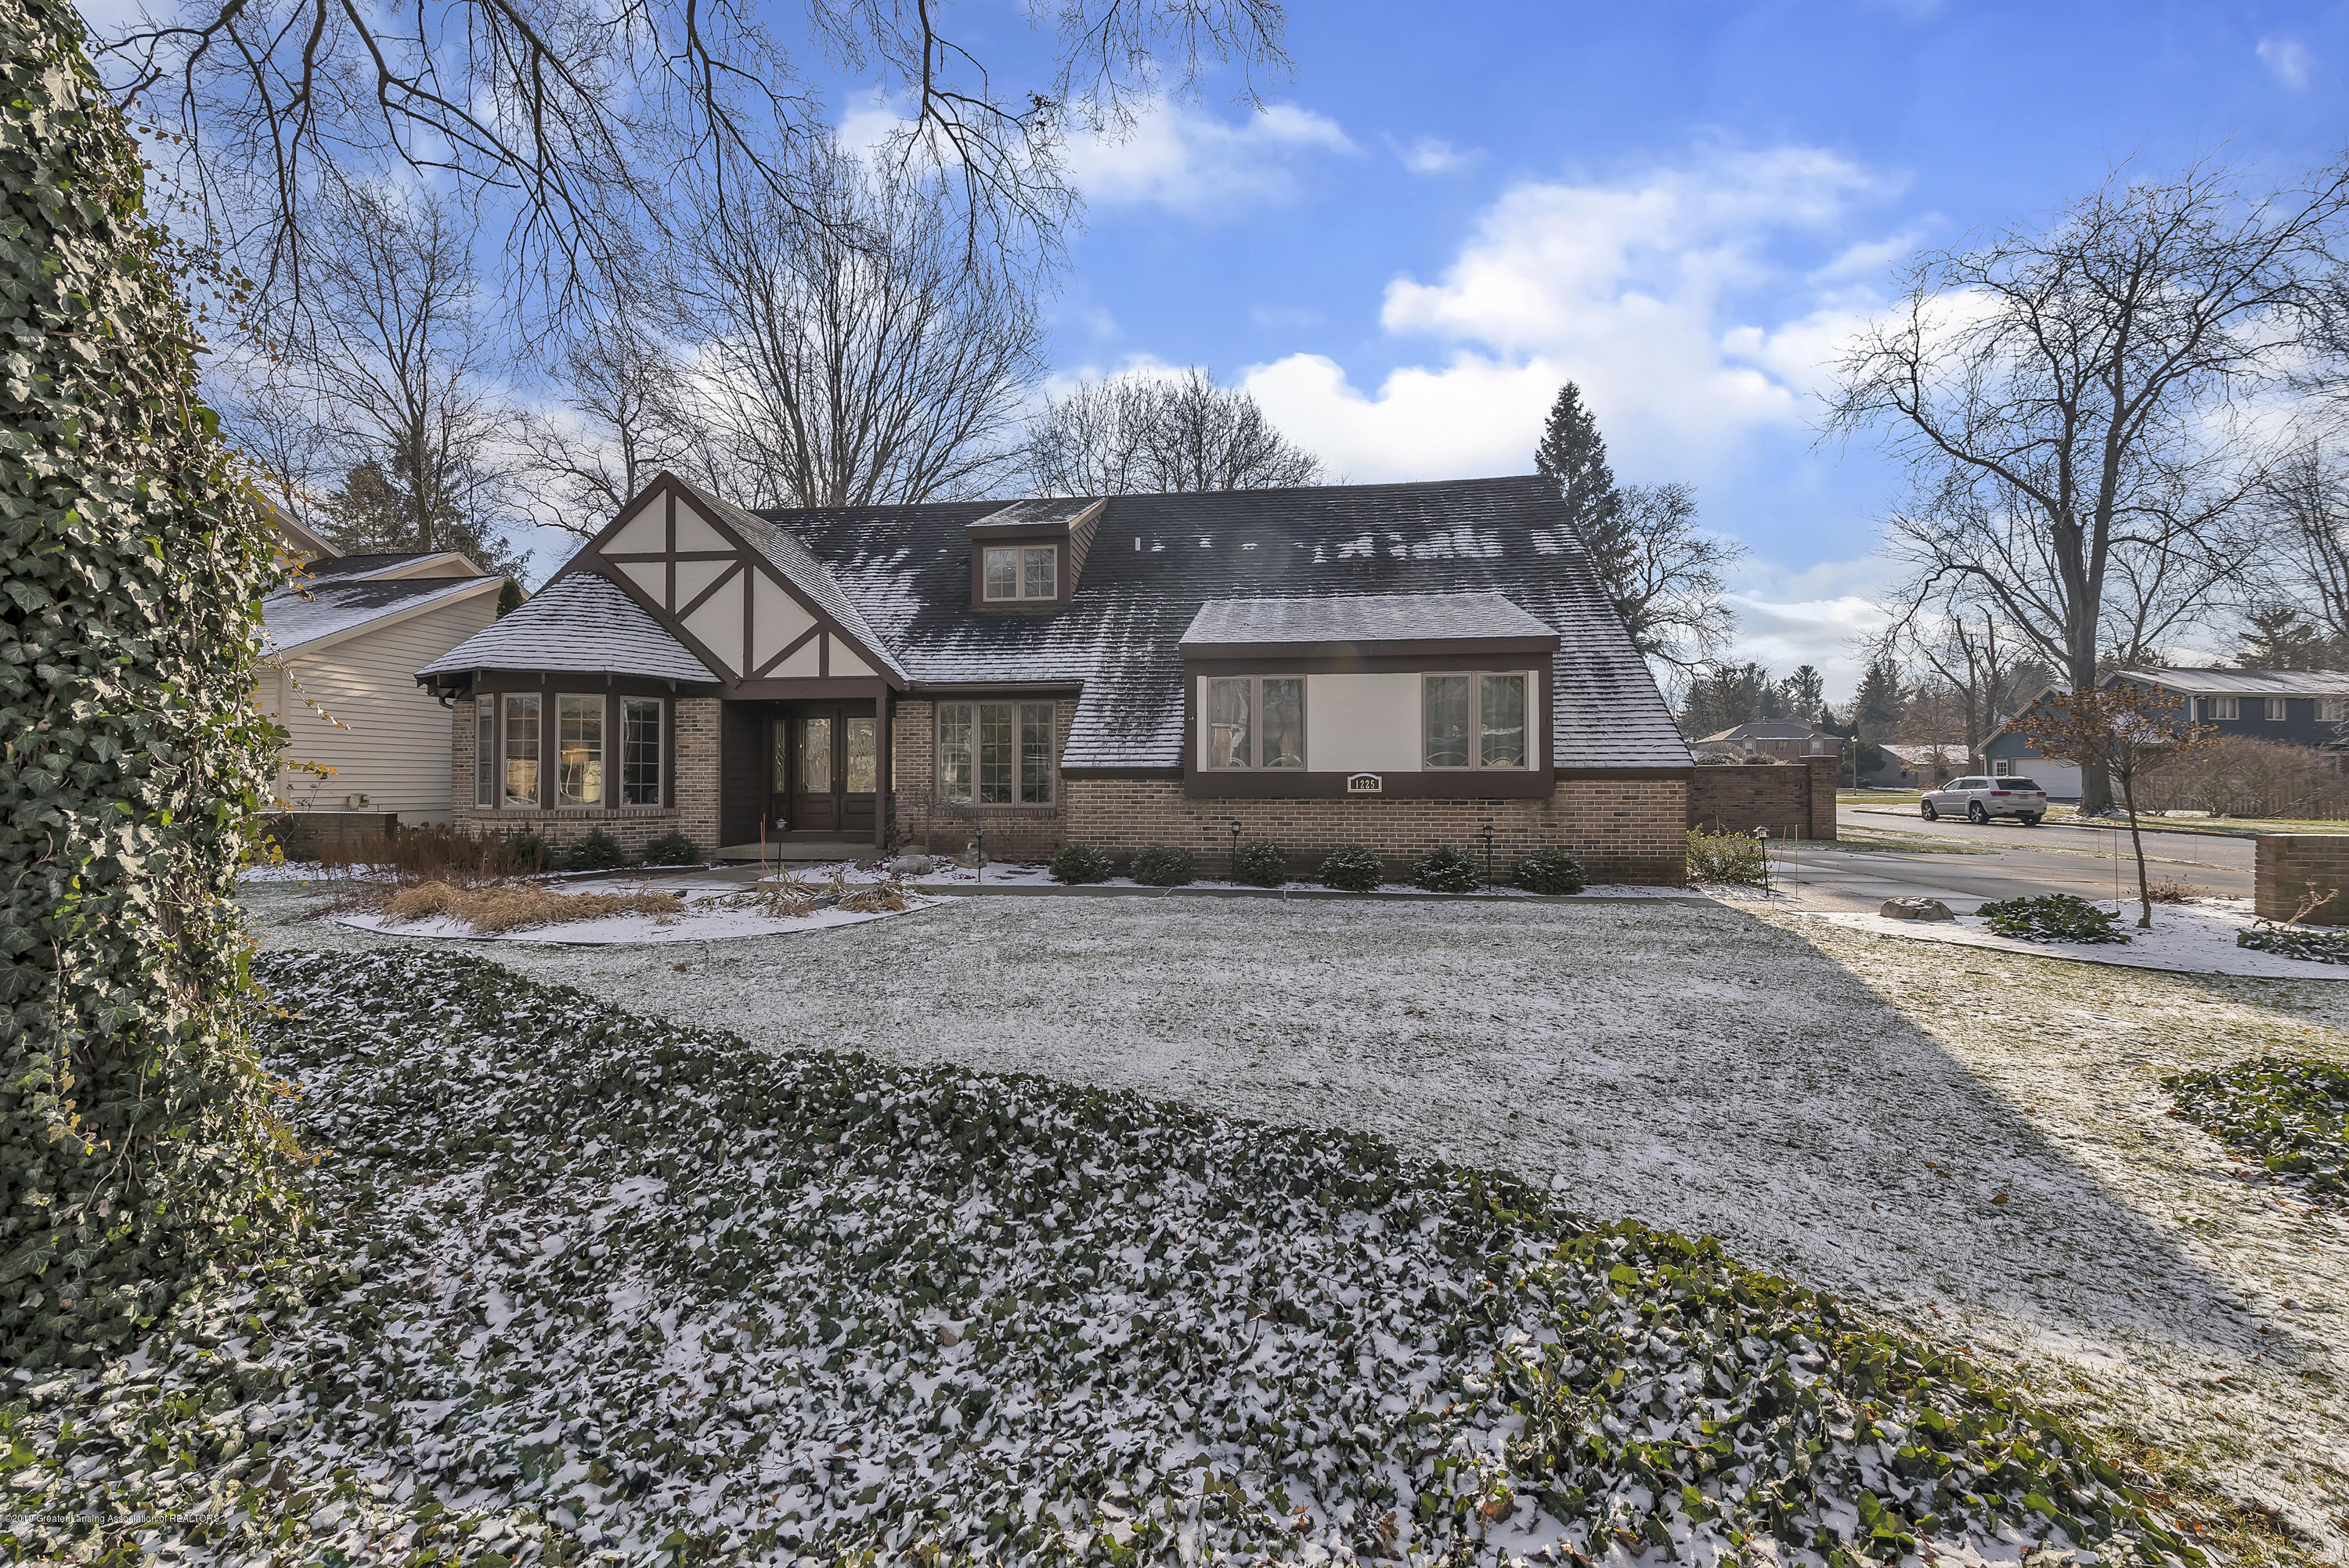 1225 Farwood Dr - 1225-Farwood-Drive-East-Lansing-Michigan - 1